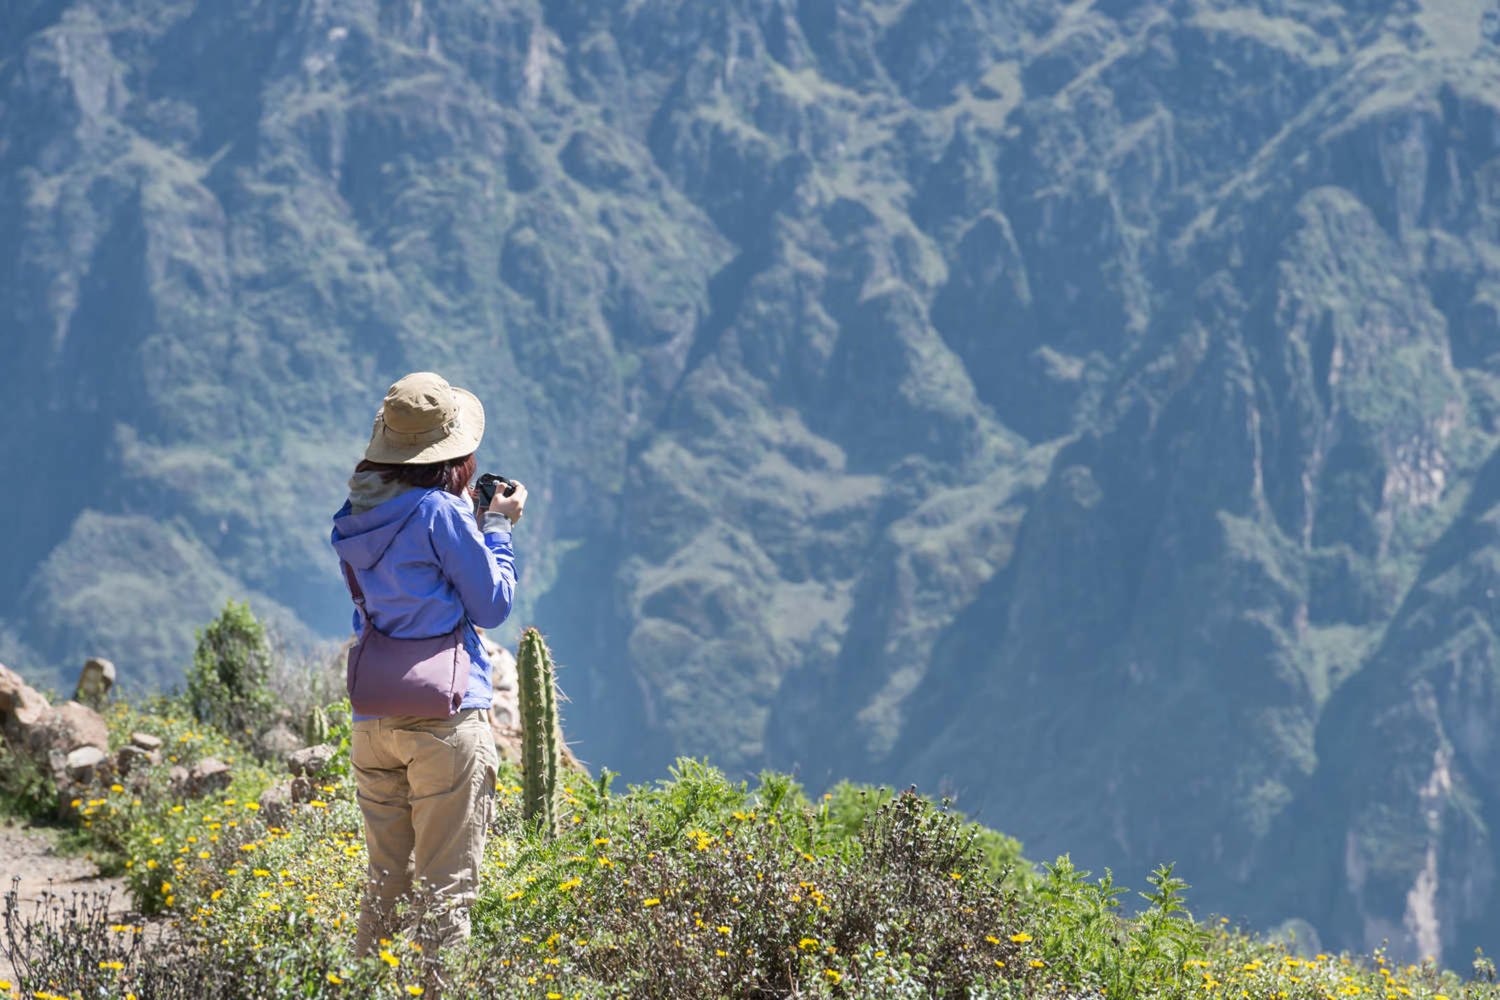 Enjoying the natural scene as a reward after achieving Colca Canyon's summit